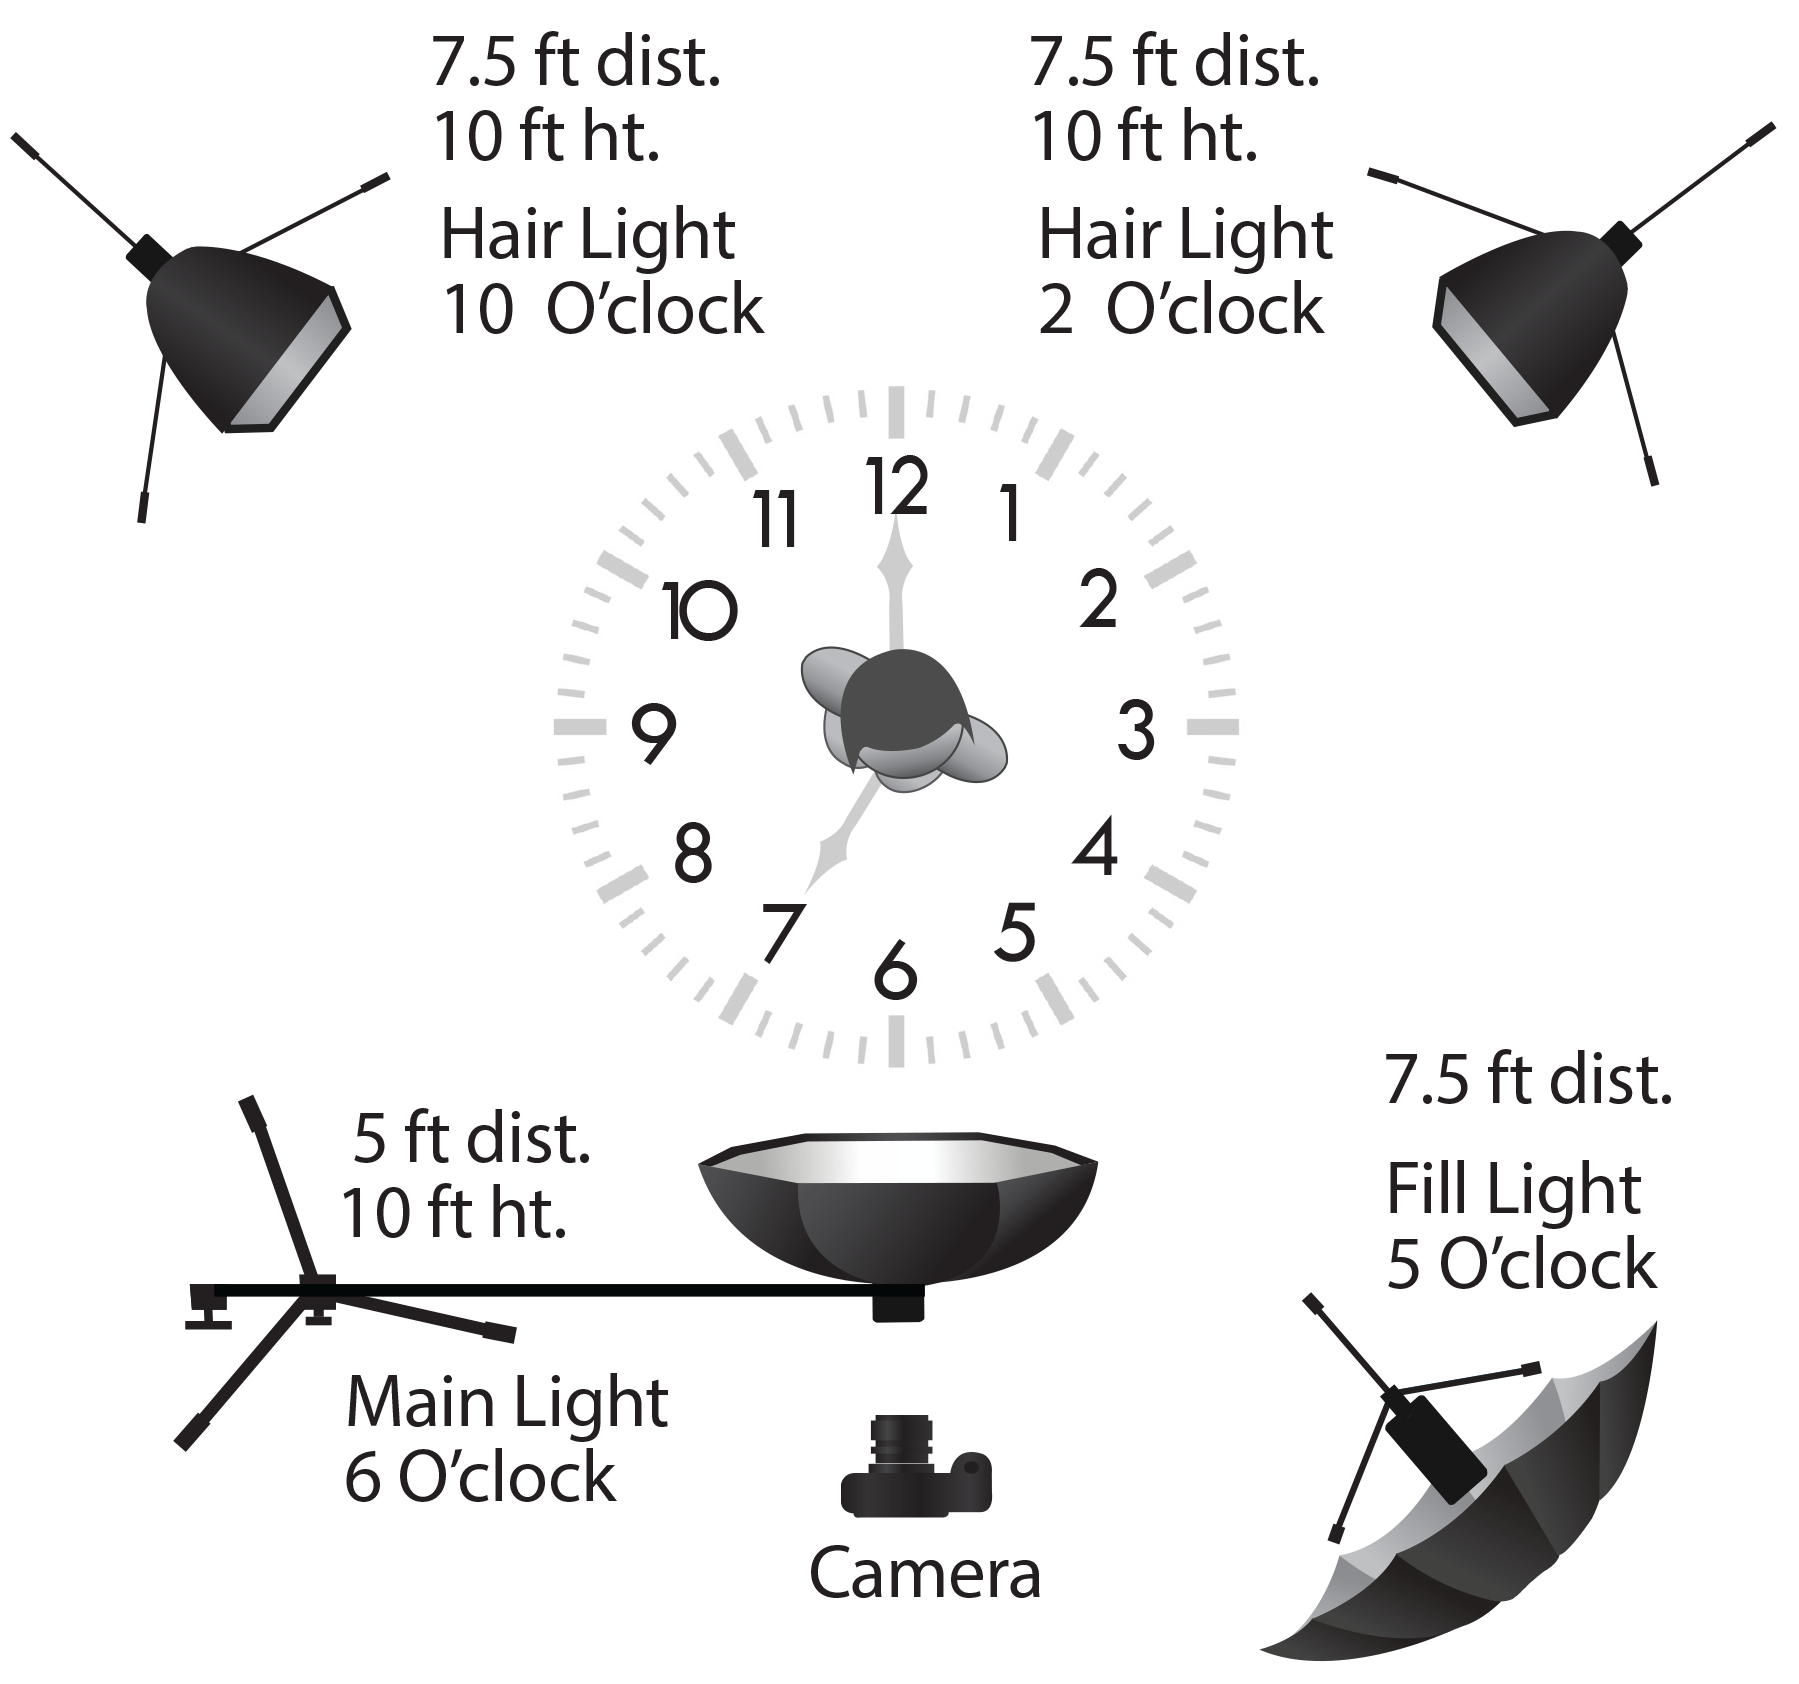 The above lighting diagram shows the position of the lights with respect to the subject.